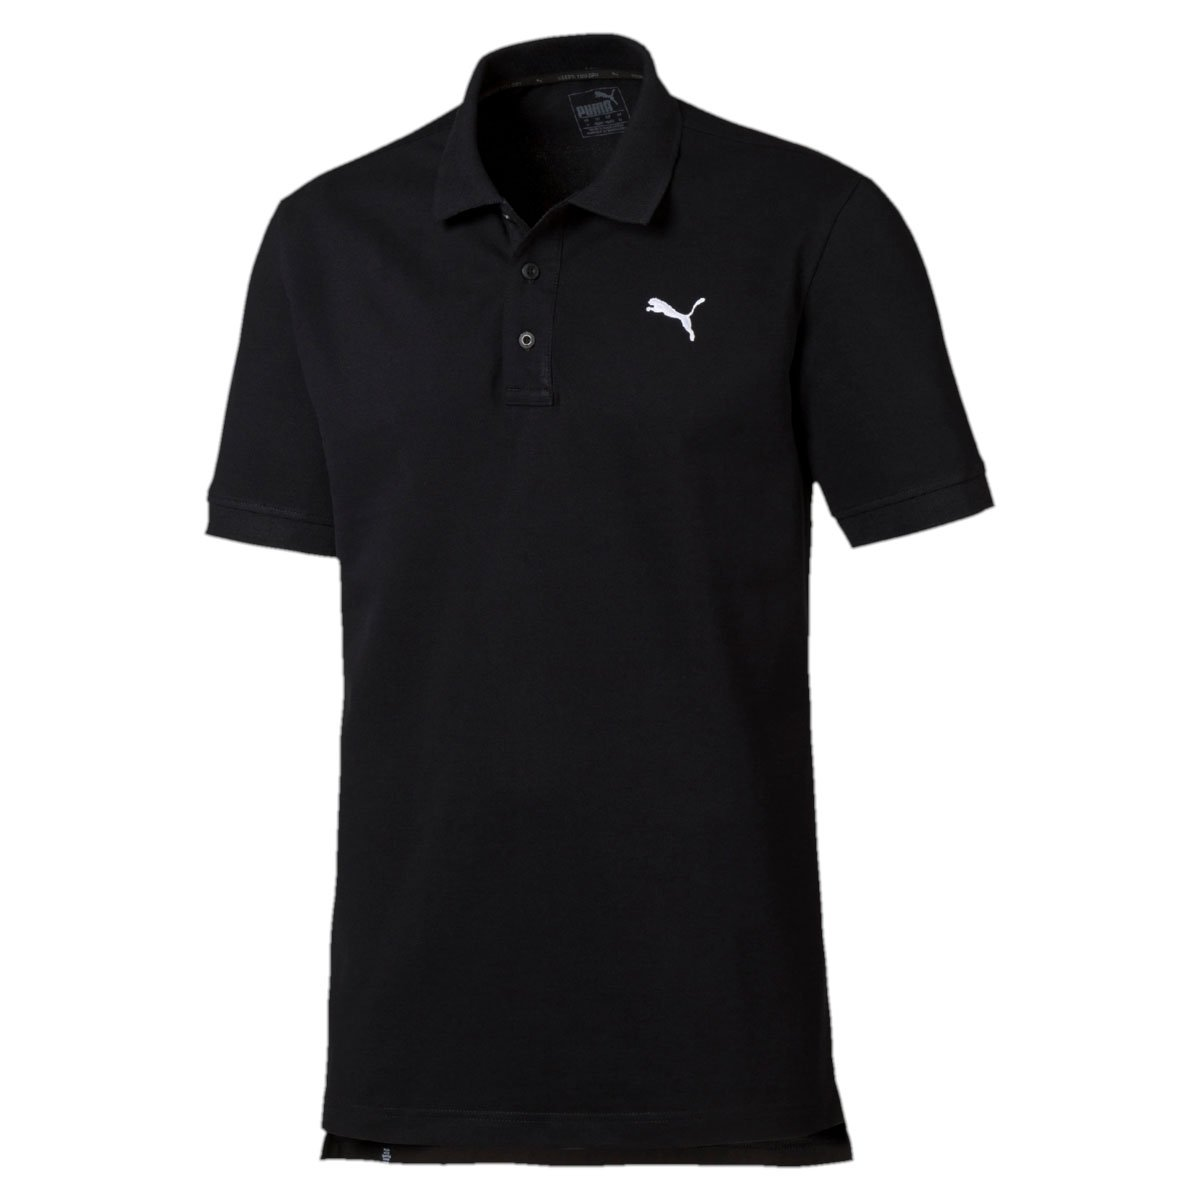 1414eac55ea94 PLAYERA POLO ESSENTIALS PUMA - Caballero